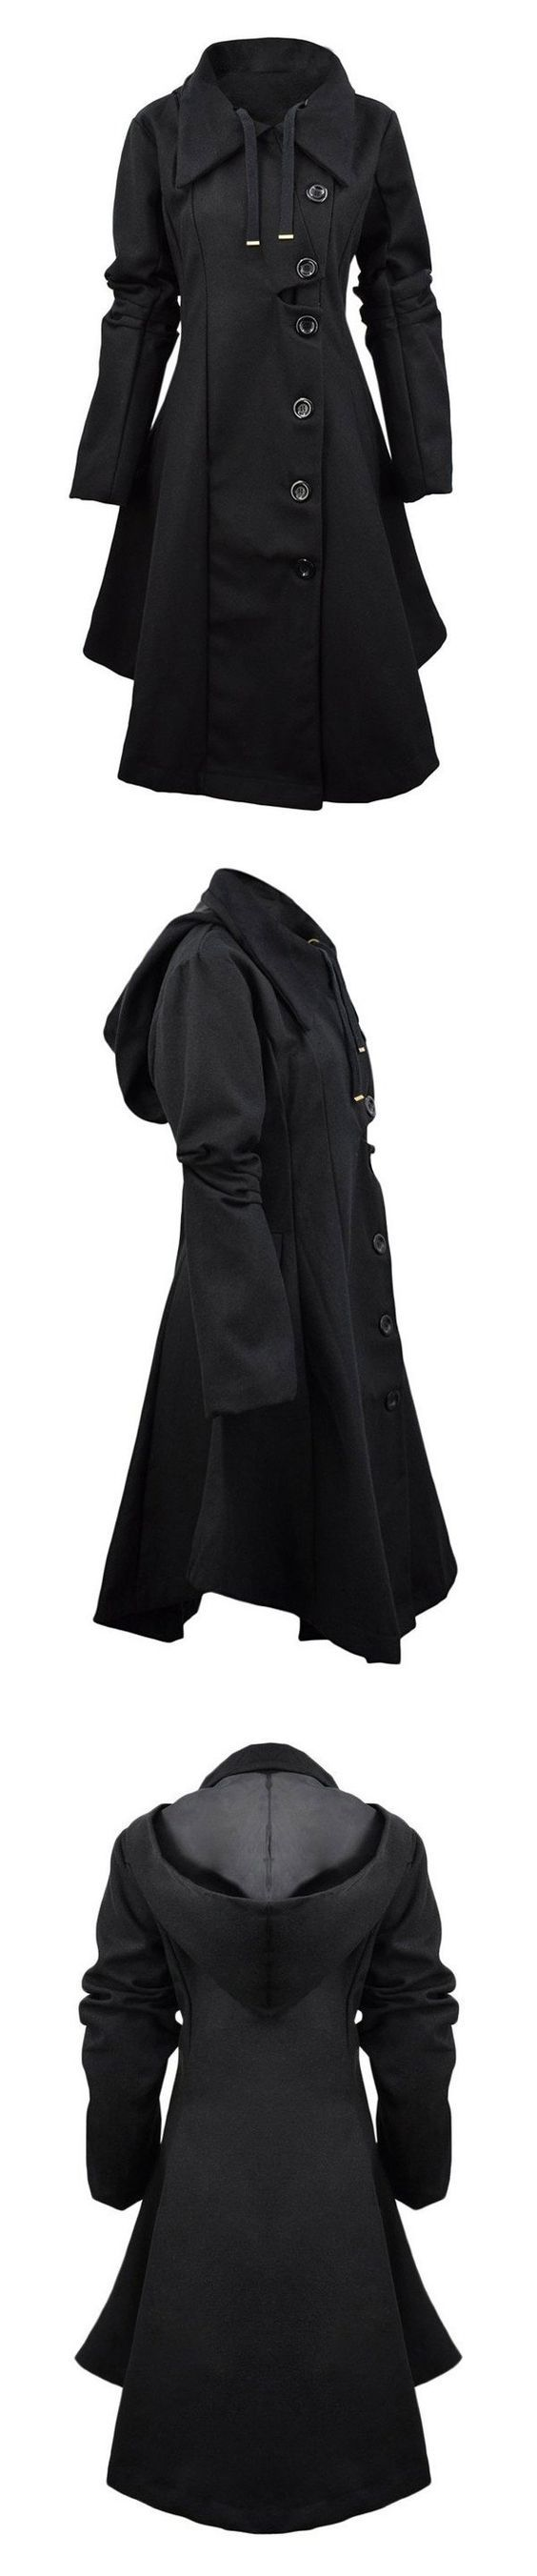 Only $44.99!This women high-quality woolen fabric Long coat detailed with a big hat,Single-breasted ,Lapel collar,Slim shape,waisted pattern & asymmetrical hem.Keep  you warm in this fall/winter!| Now Free Shipping & Easy Return, Very popular and thick coat that deserved to be put into your wardrobe,Go against the cold! Search more fashion clothing at vogueclips.com